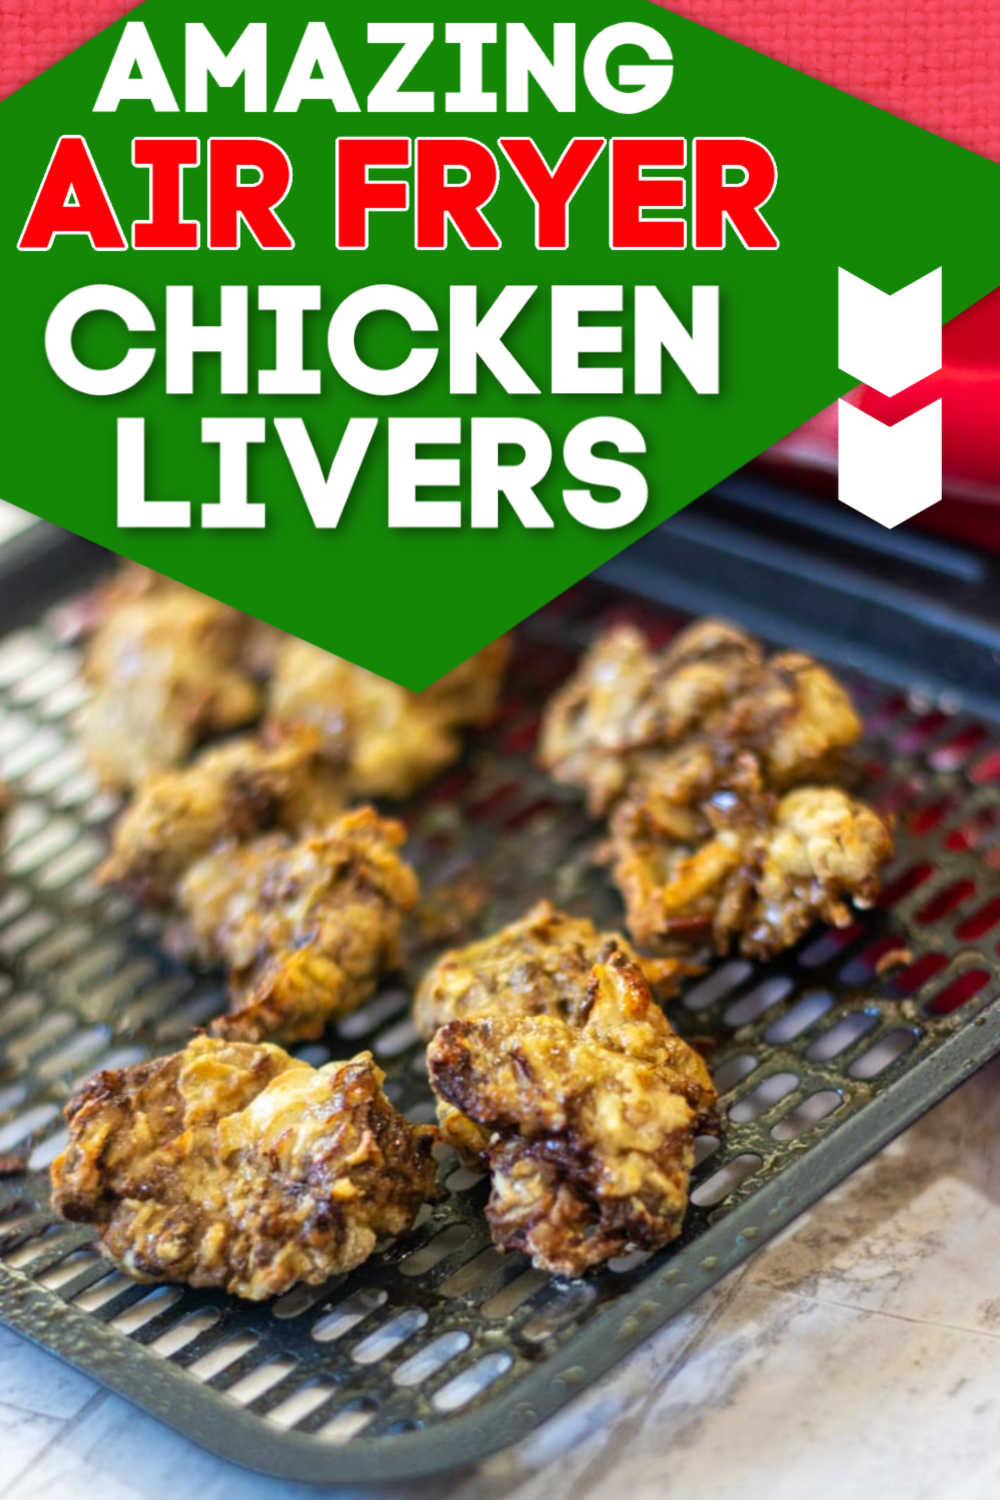 Air Fryer Chicken Livers - 10 Minute Appetizer